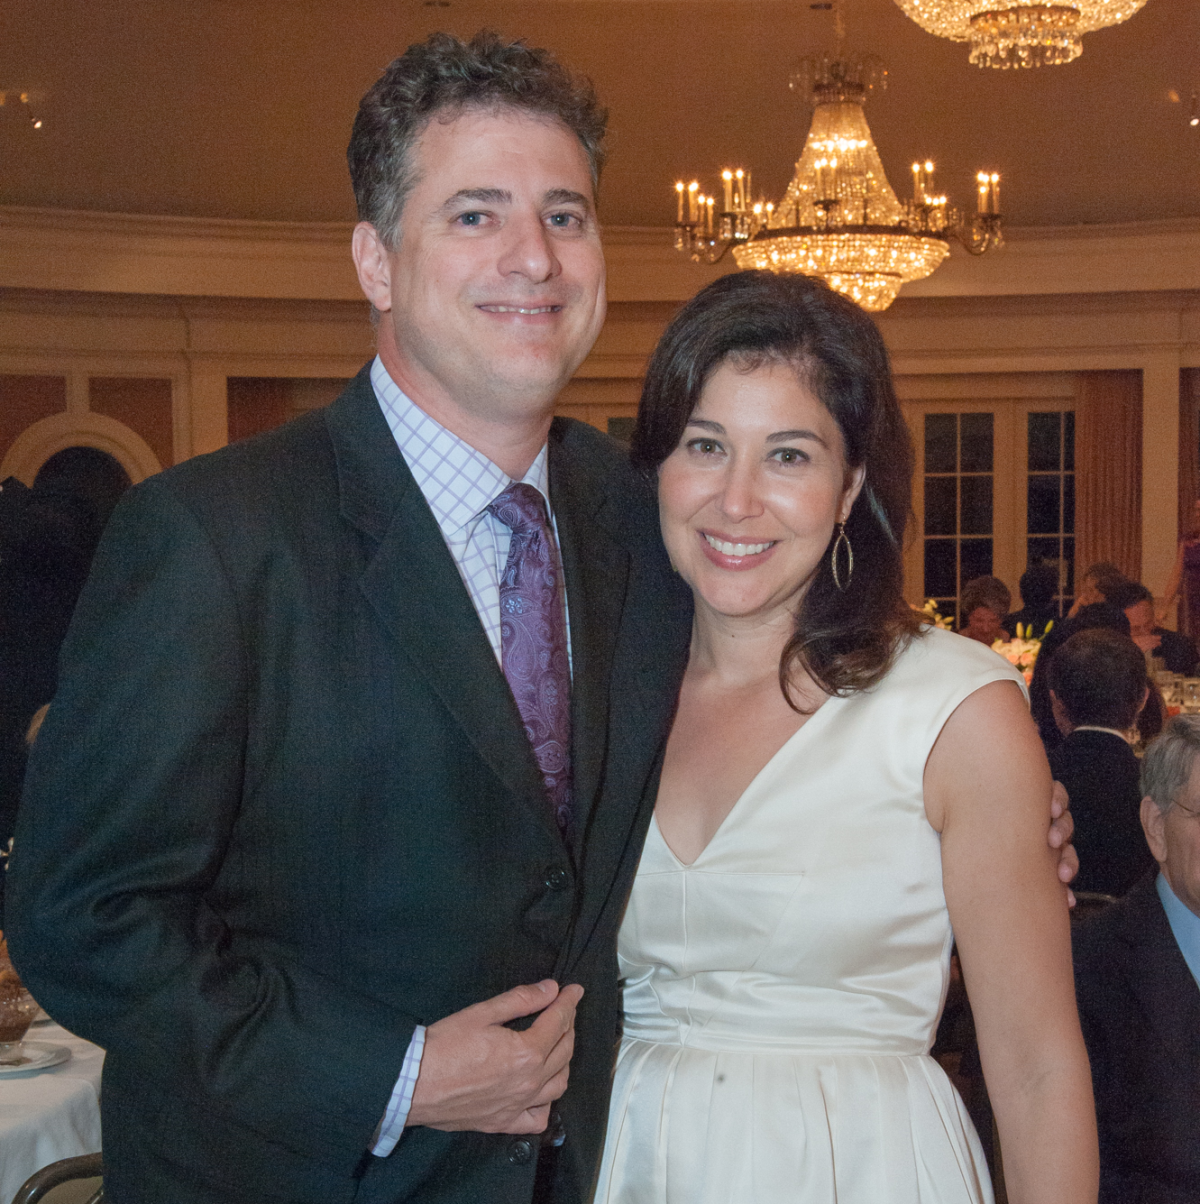 Houston, River Oaks Chamber Orchestra Gala, October 2015, Benjamin and Jennifer Fink